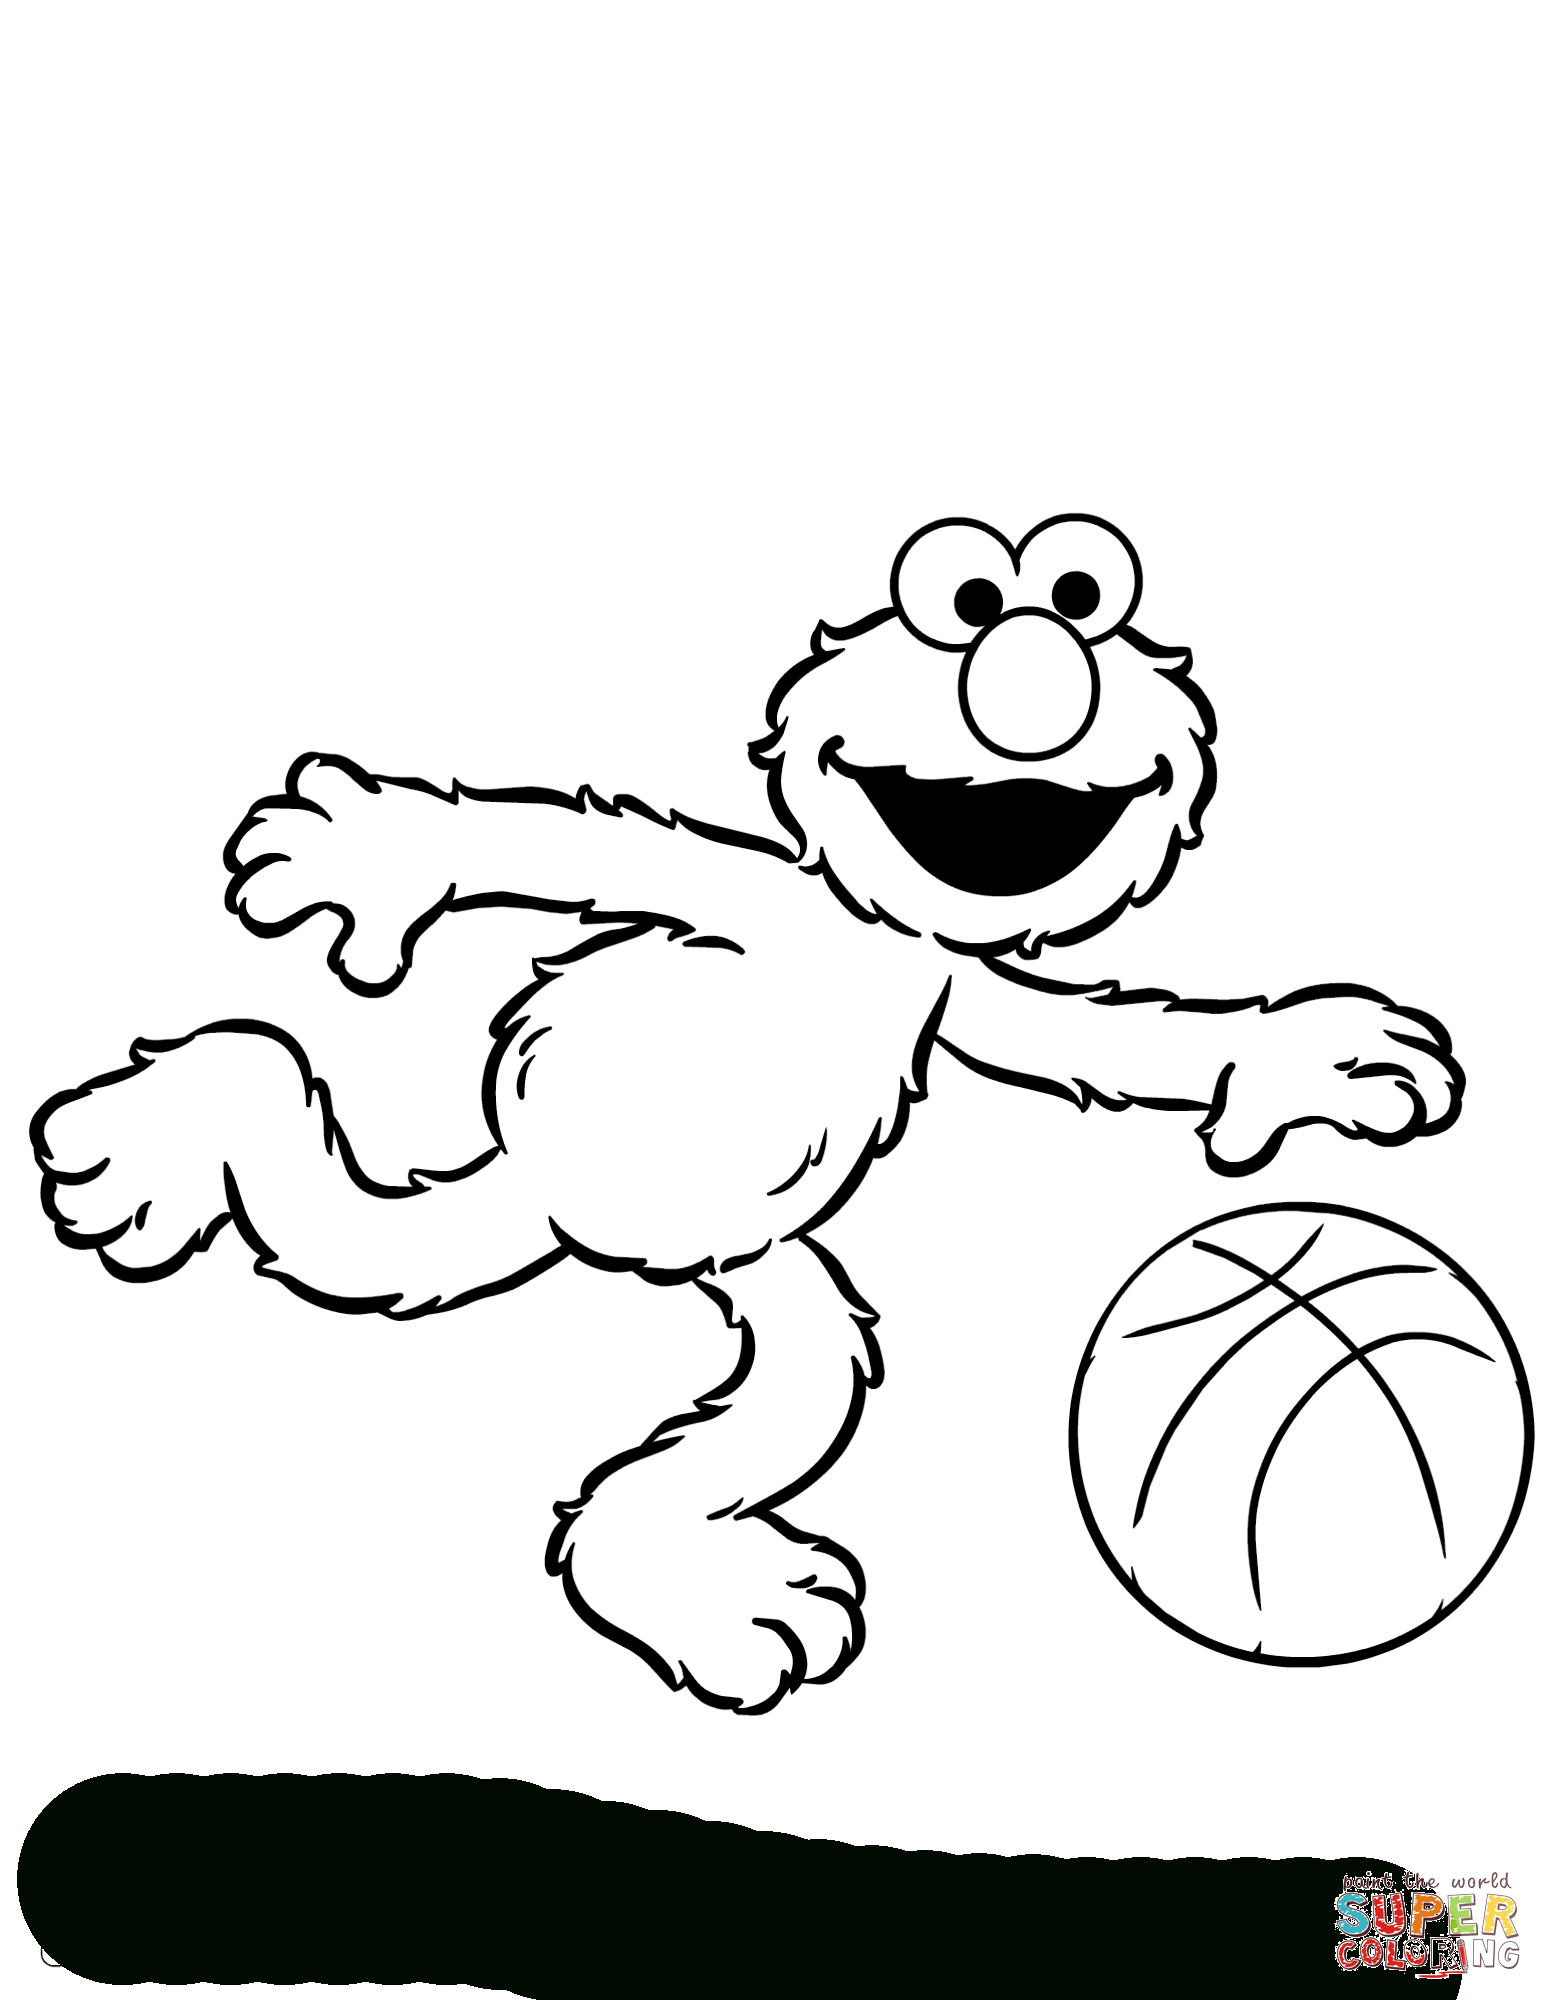 Elmo Coloring Page | Free Printable Coloring Pages - Elmo Color Pages Free Printable